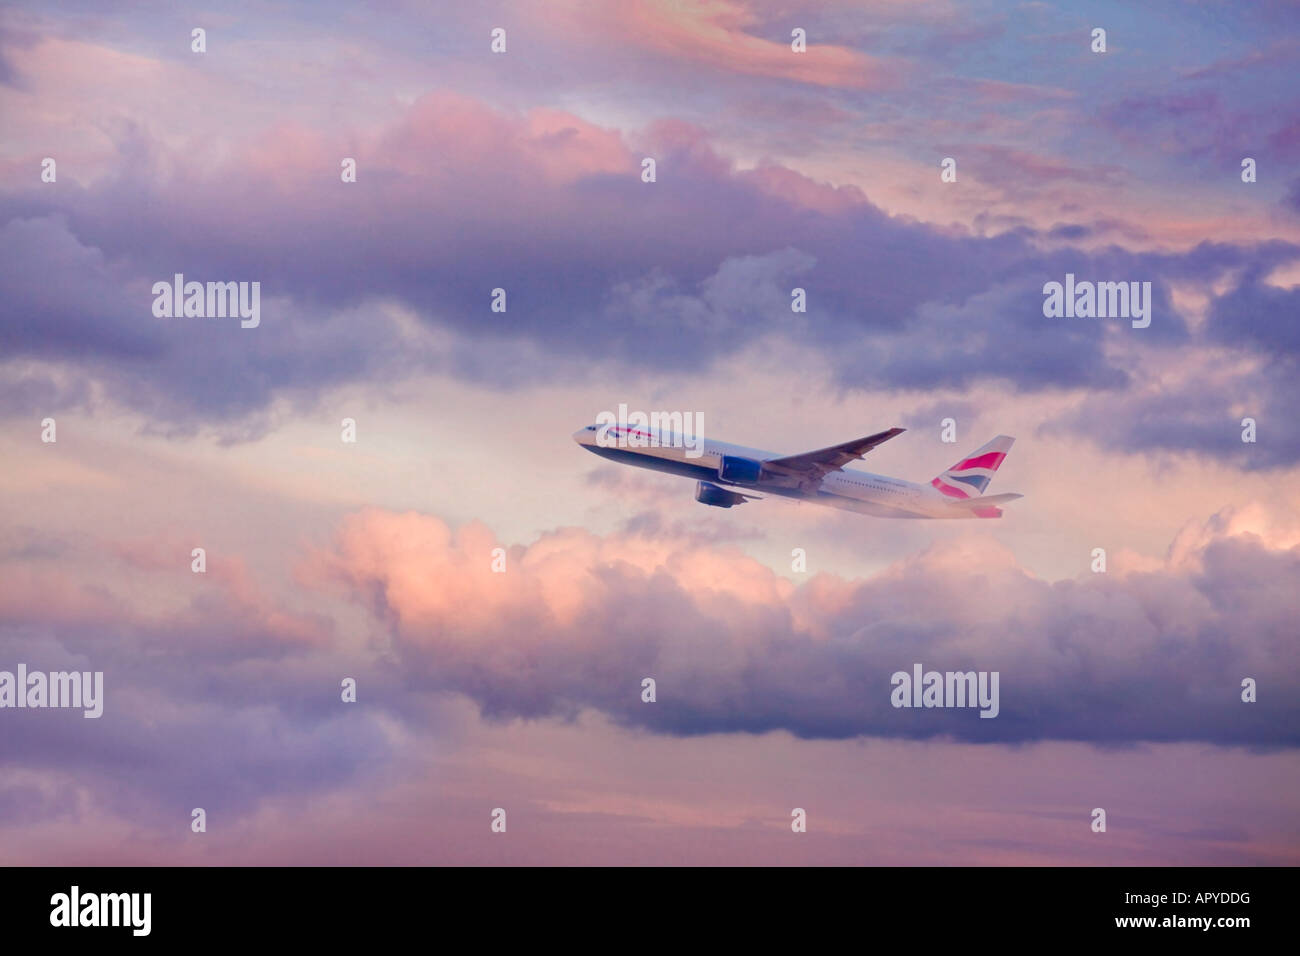 airoplane flying in dramatic sky - Stock Image